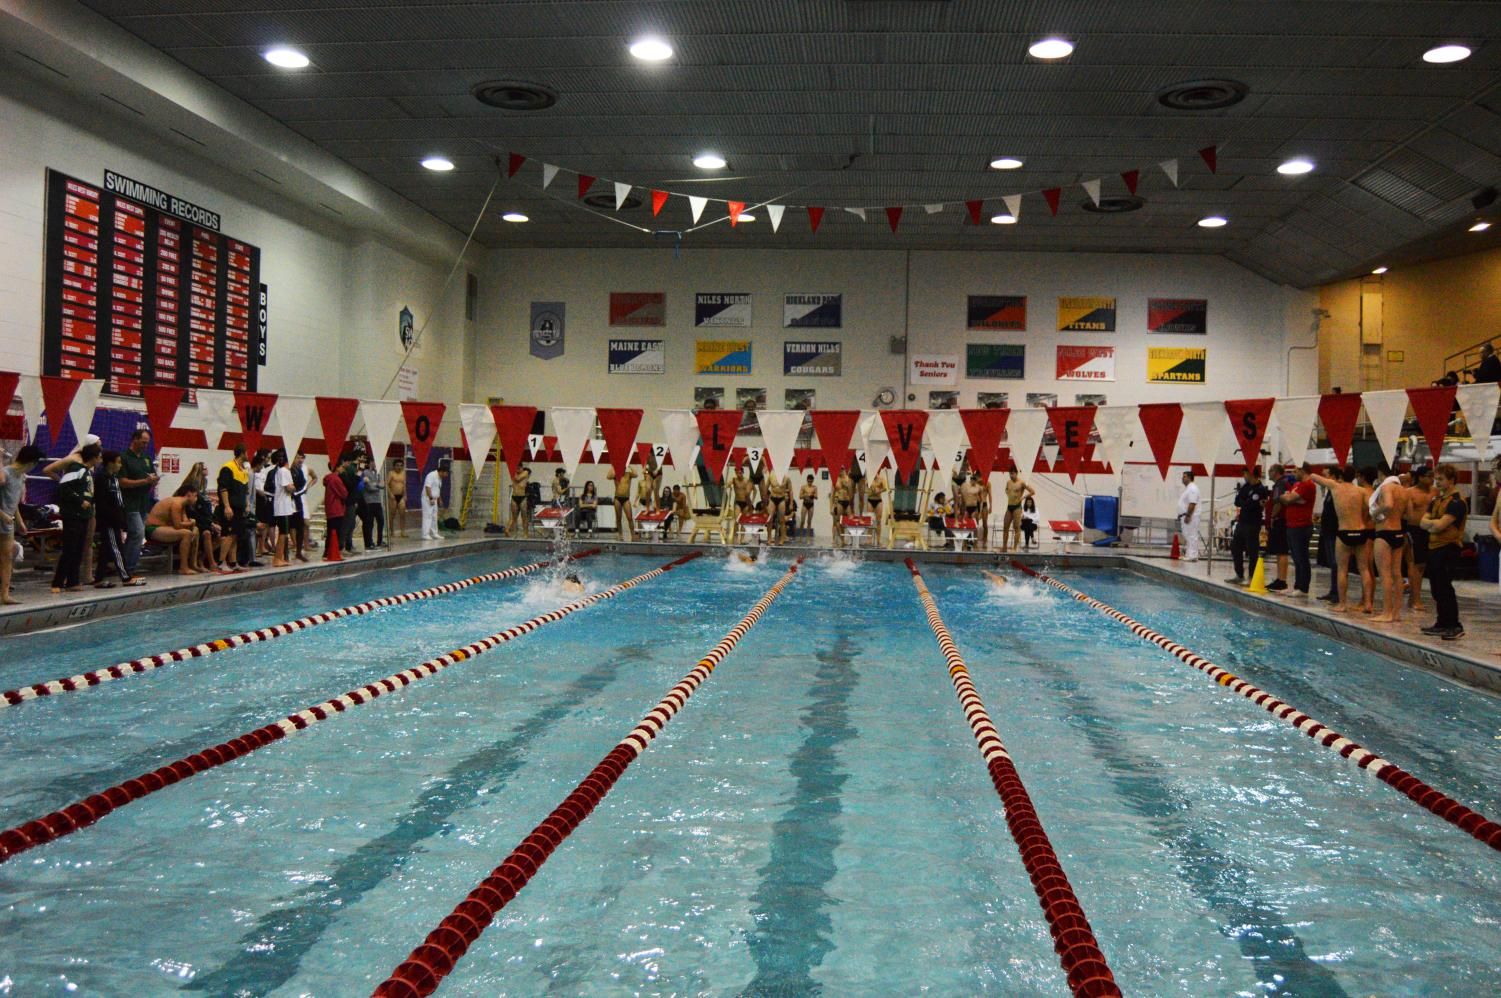 The+beginning+of+the+Niles+West+swimming+and+diving+meet+against+Glenbrook+North.+